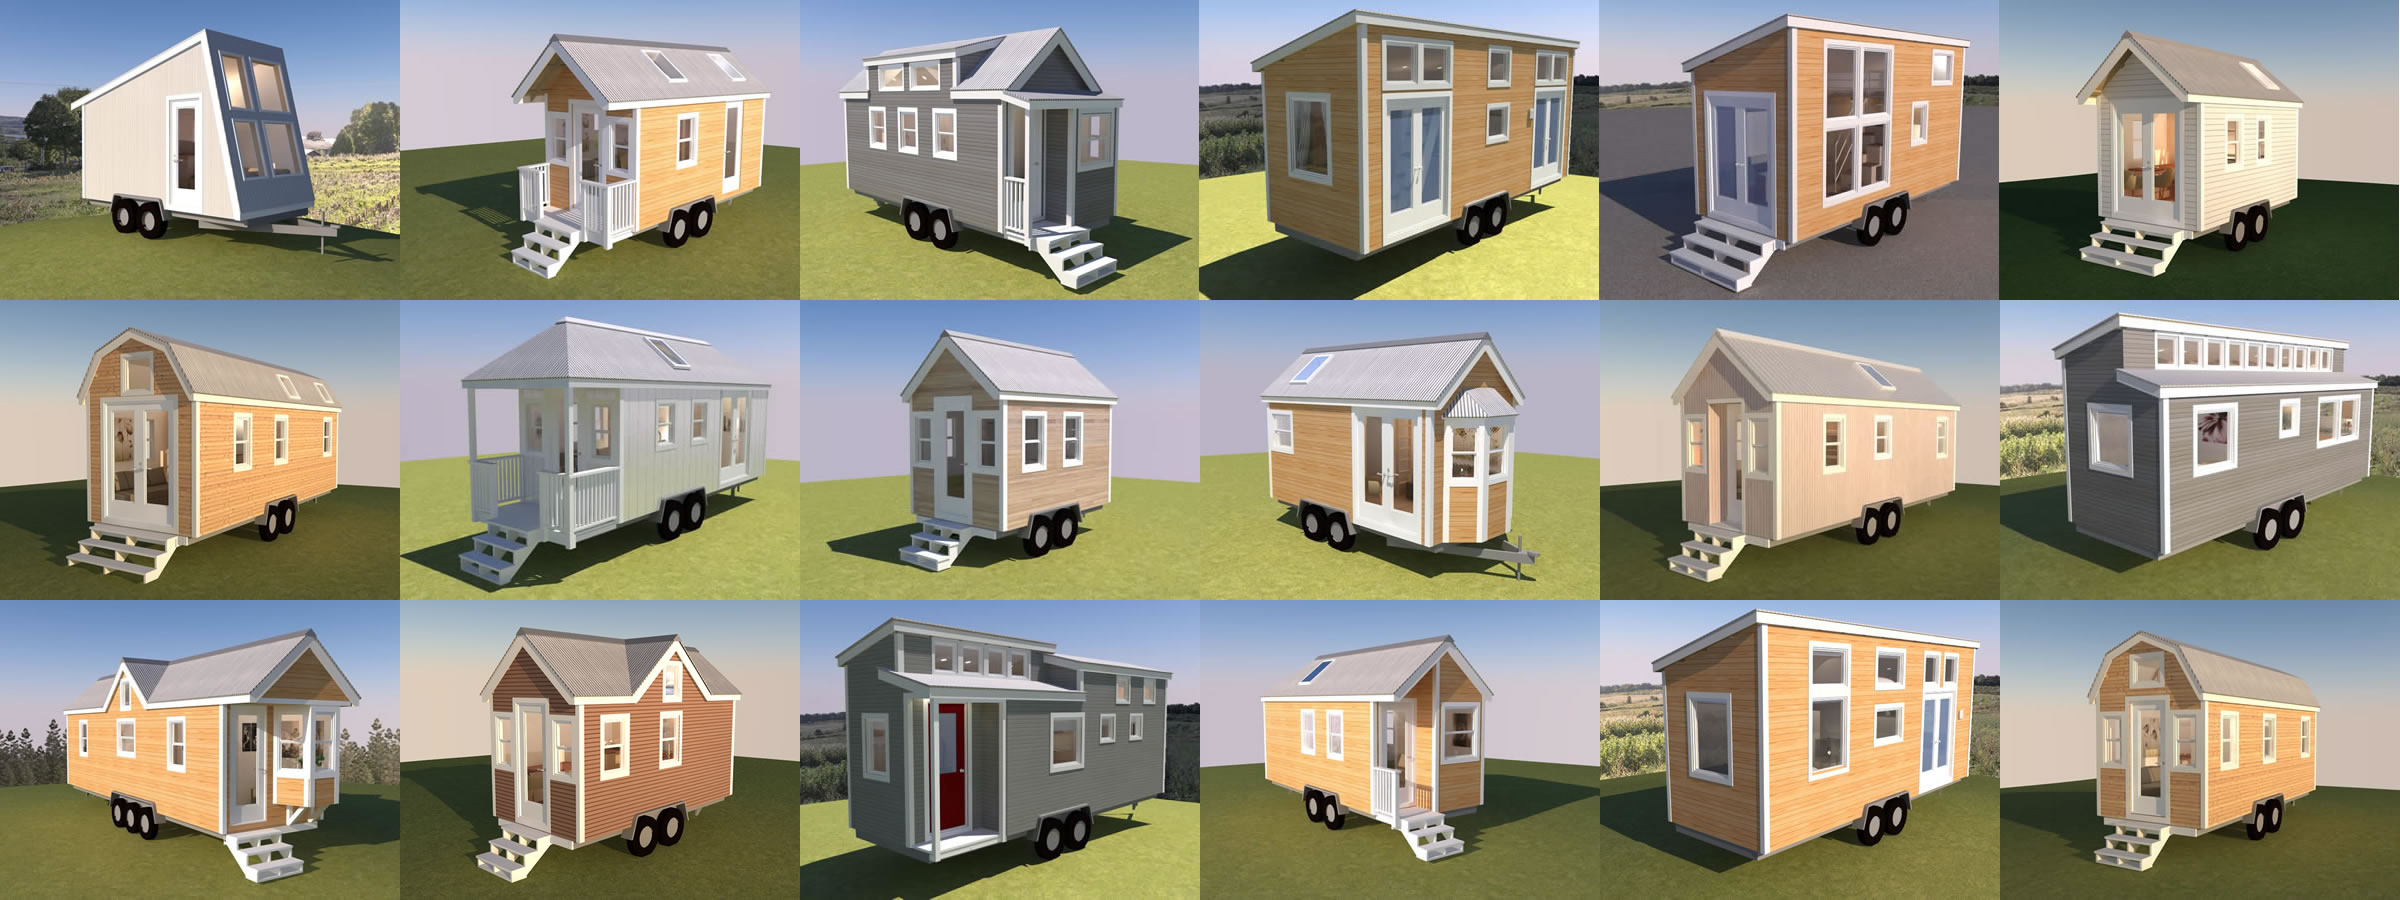 Tiny House With Garage Plans Tiny House Design Design A More Resilient Life